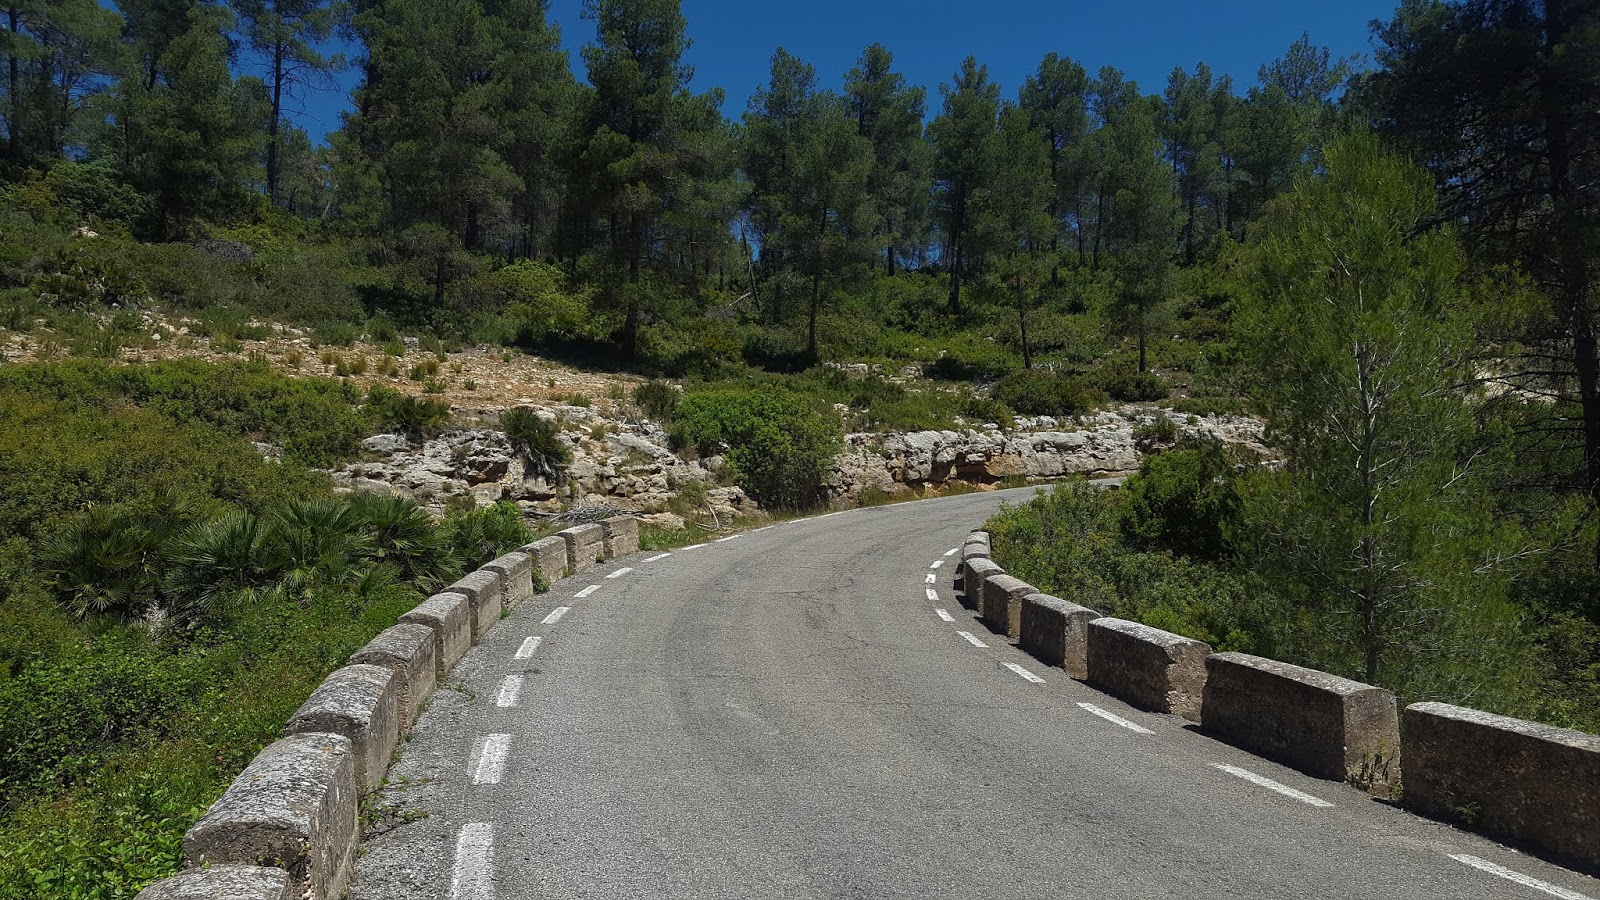 Bends near the top of Casas de Benalí, Valencia, Spain